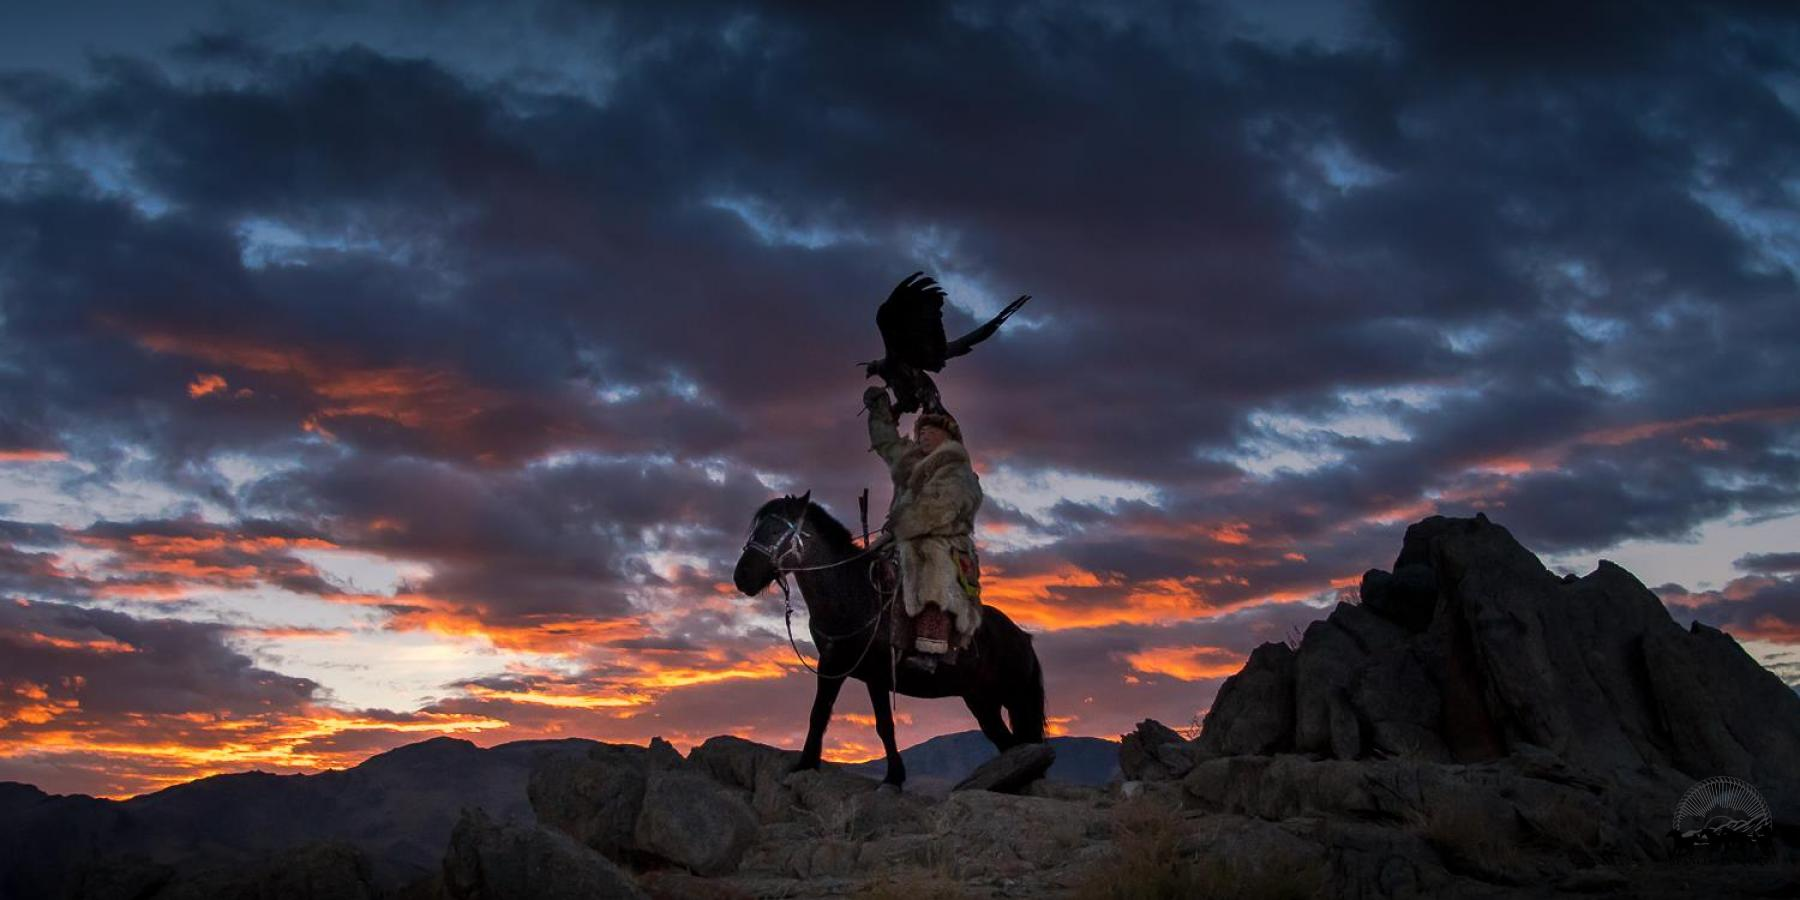 Kazakh eagle hunter mounted on horse with eagle on arm in western Mongolia with Estancia Ranquilco